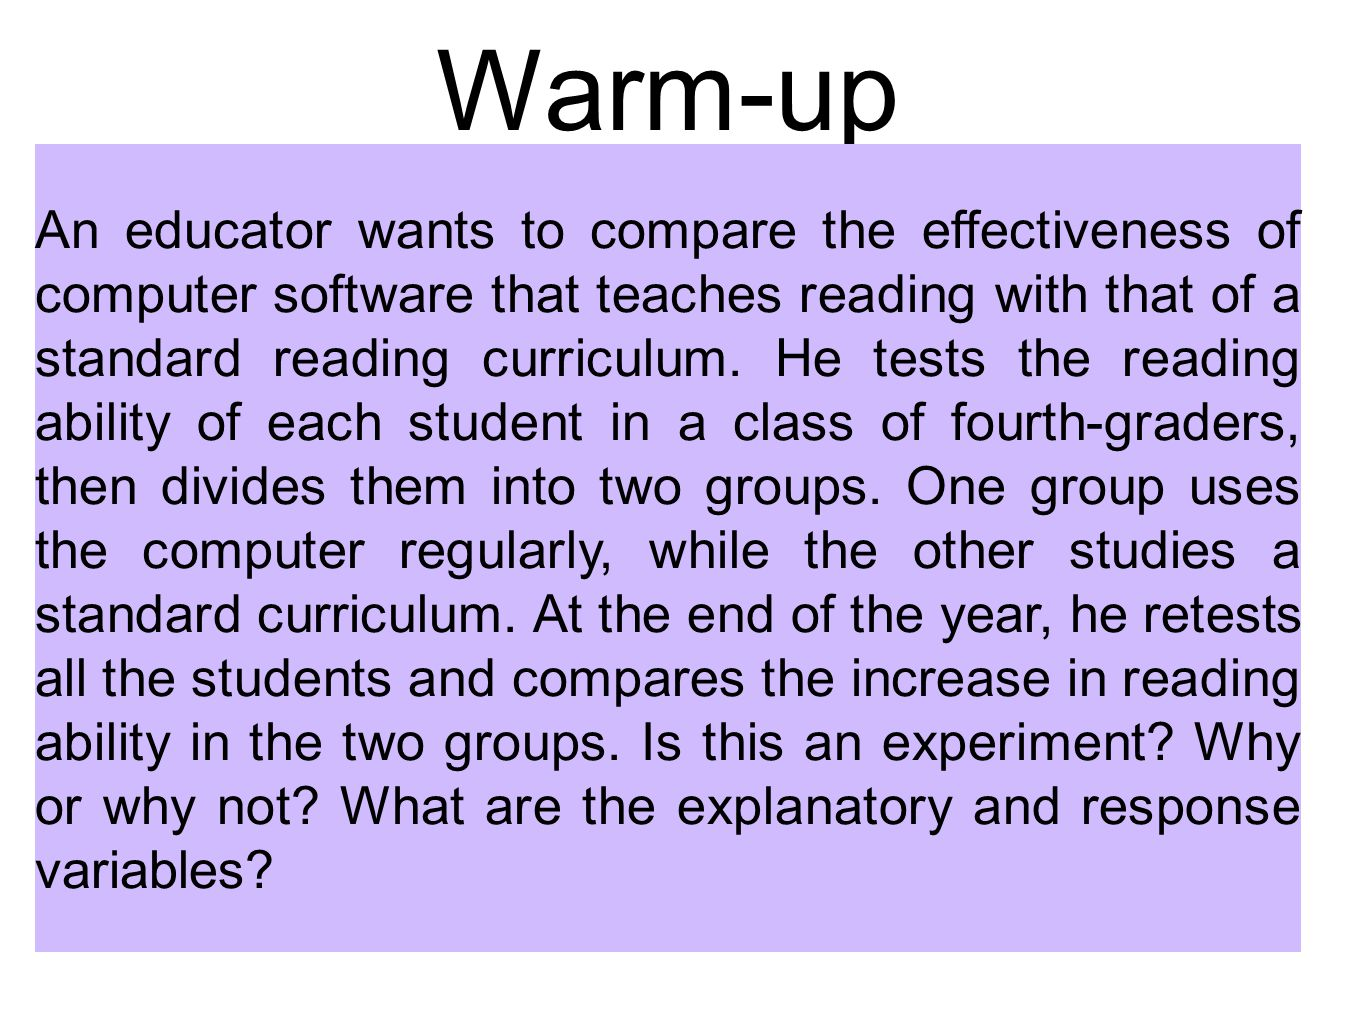 Warm-up An educator wants to compare the effectiveness of computer software that teaches reading with that of a standard reading curriculum. He tests